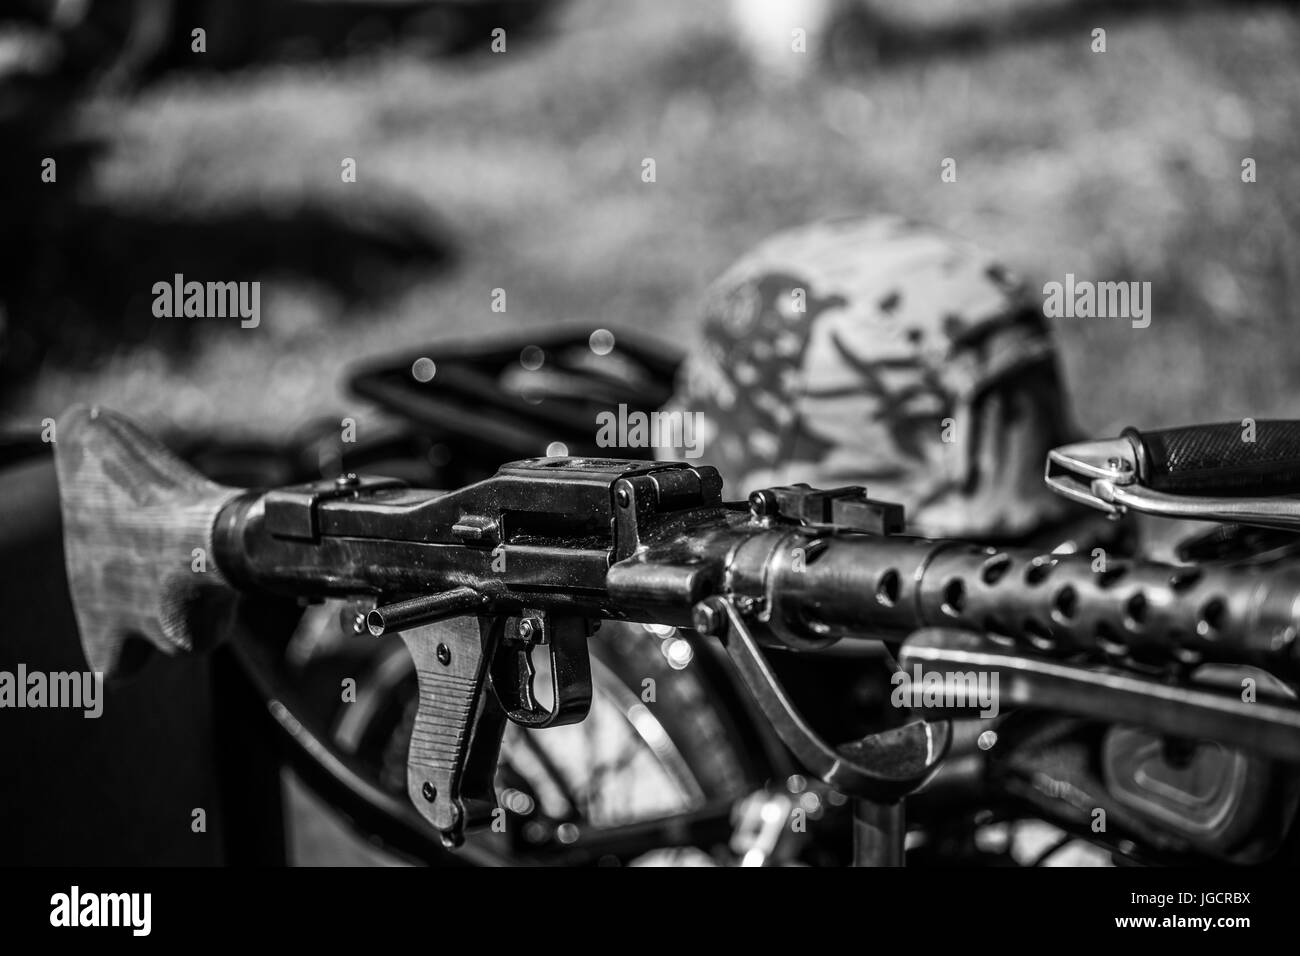 Rifle (Toy) on an old motorcycle BMW R71 from world war after renovation with military cap in the background. Black - Stock Image